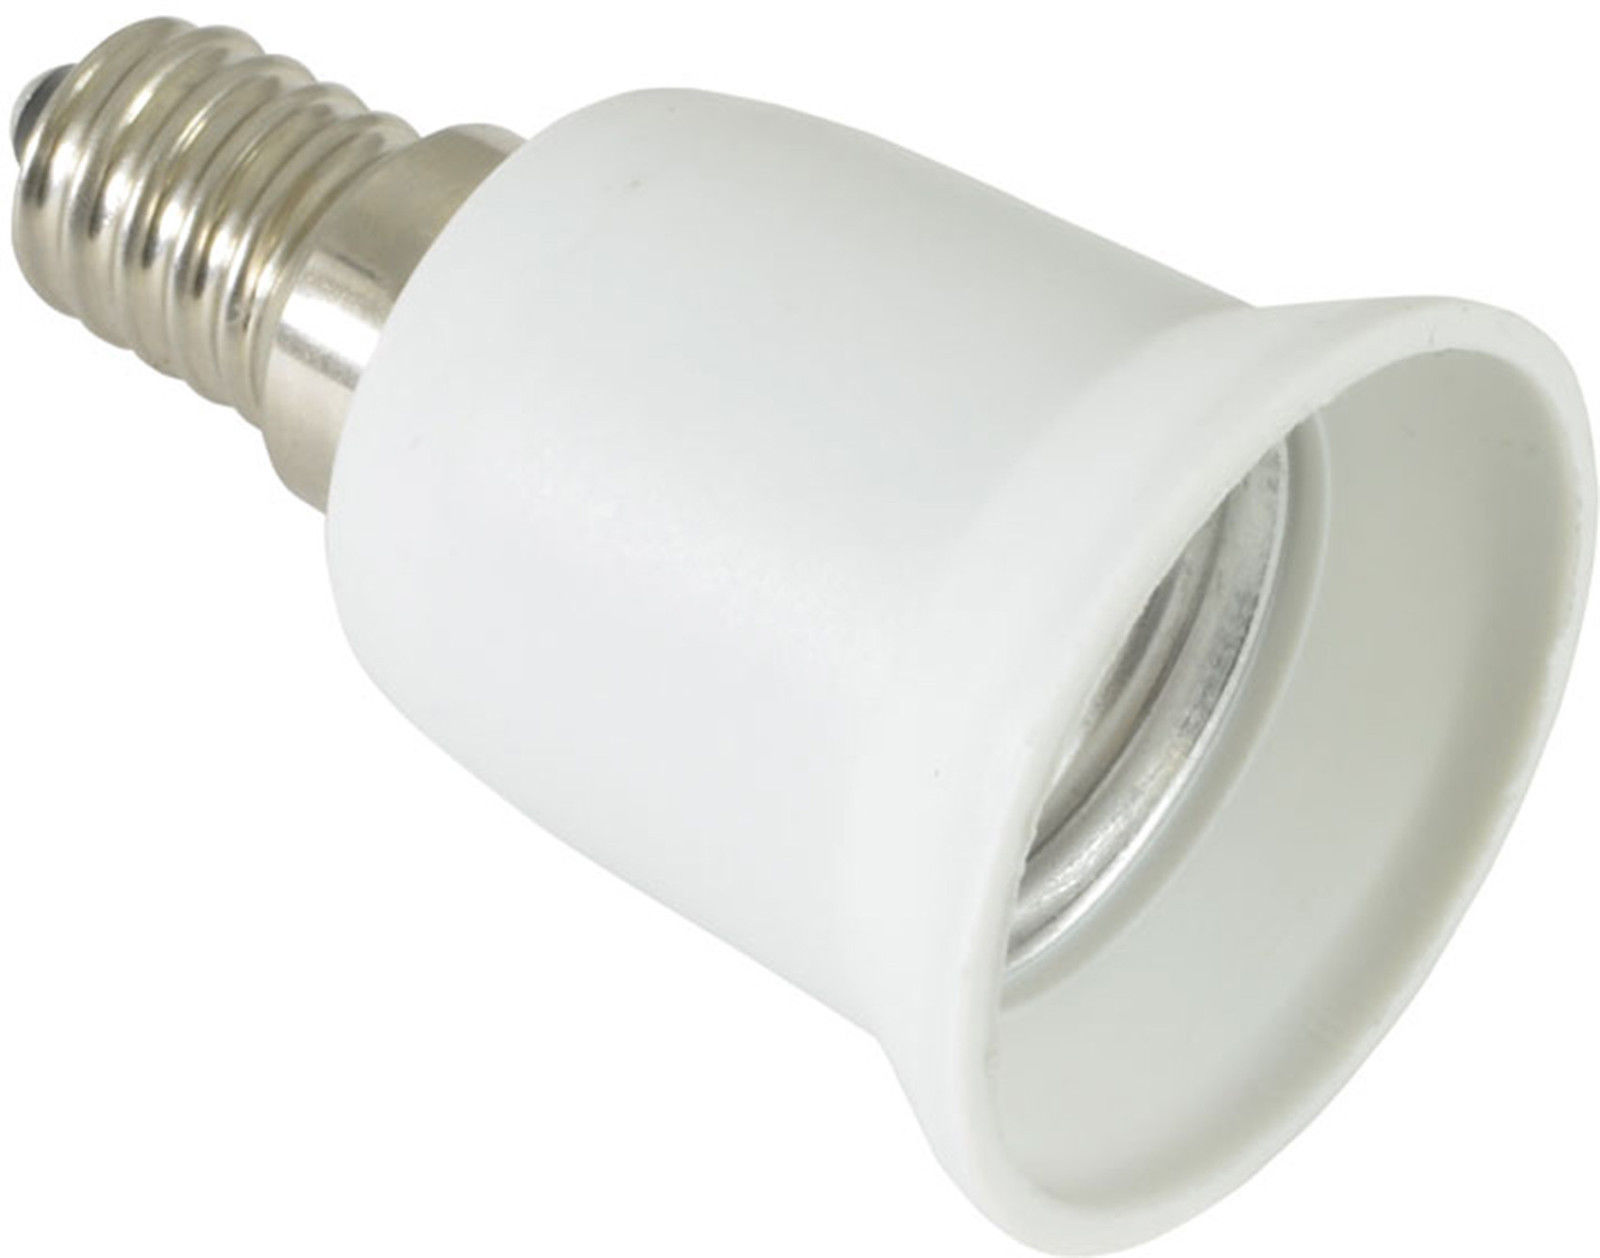 E14 E27 Adapter E14 Edison To Edison Screw E27 Lamp Adapter All Top Notch